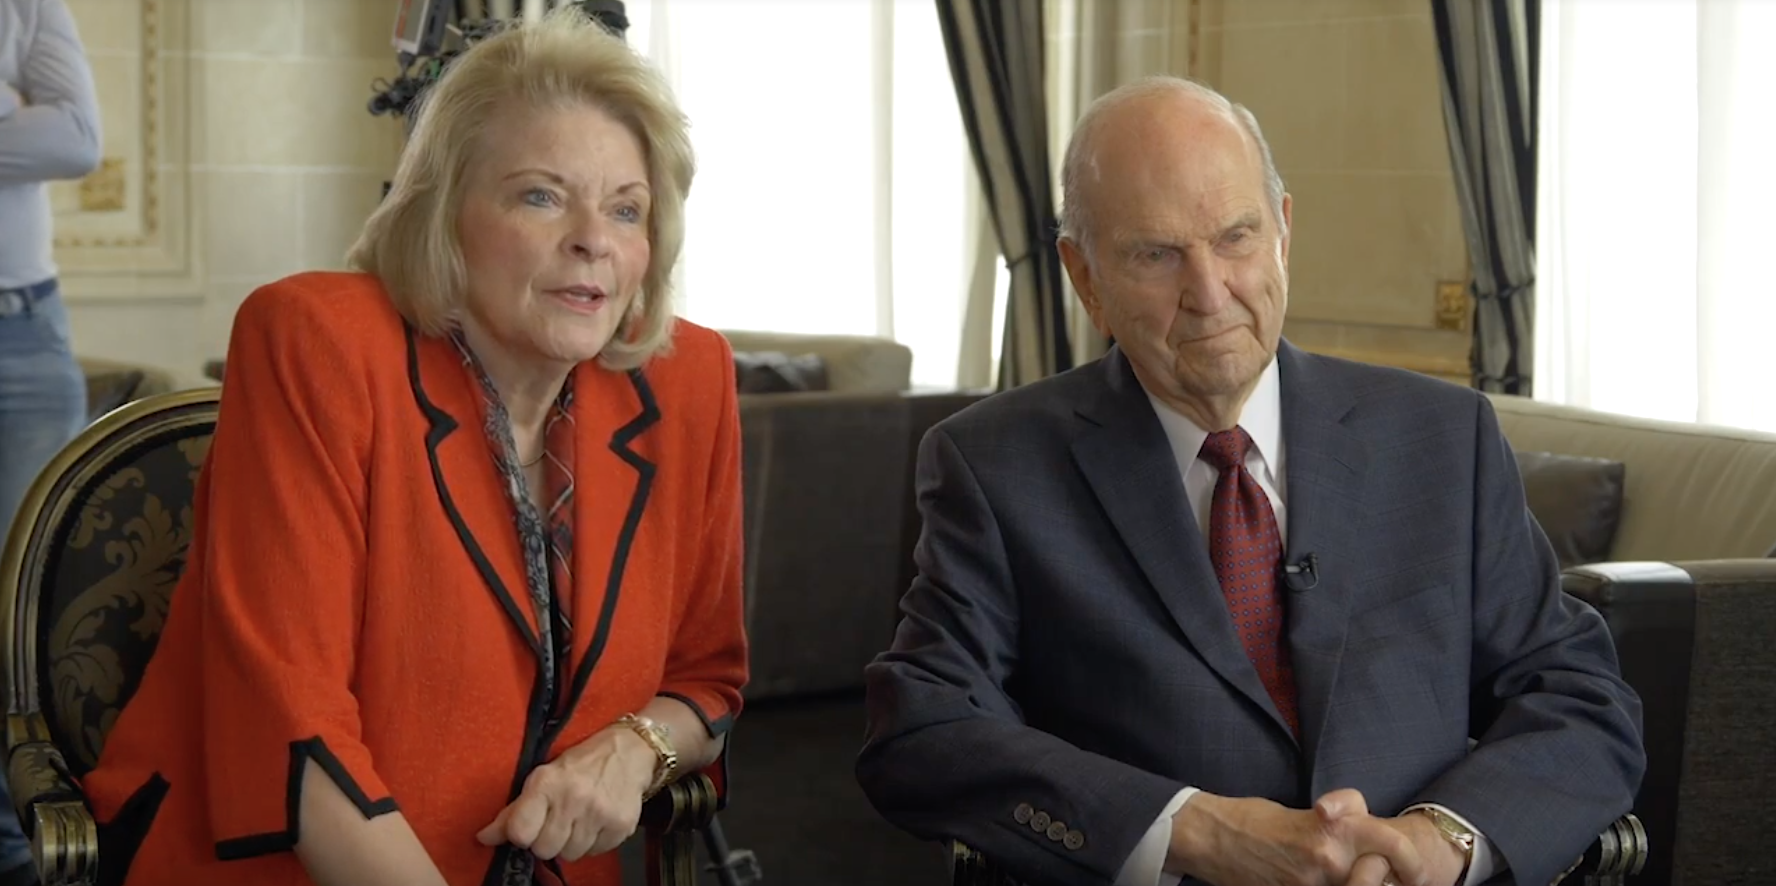 Sheri Dew joins President Russell M. Nelson for an interview with Sergio Rubin, an Argentine journalist and writer on Oct. 26, 2018.